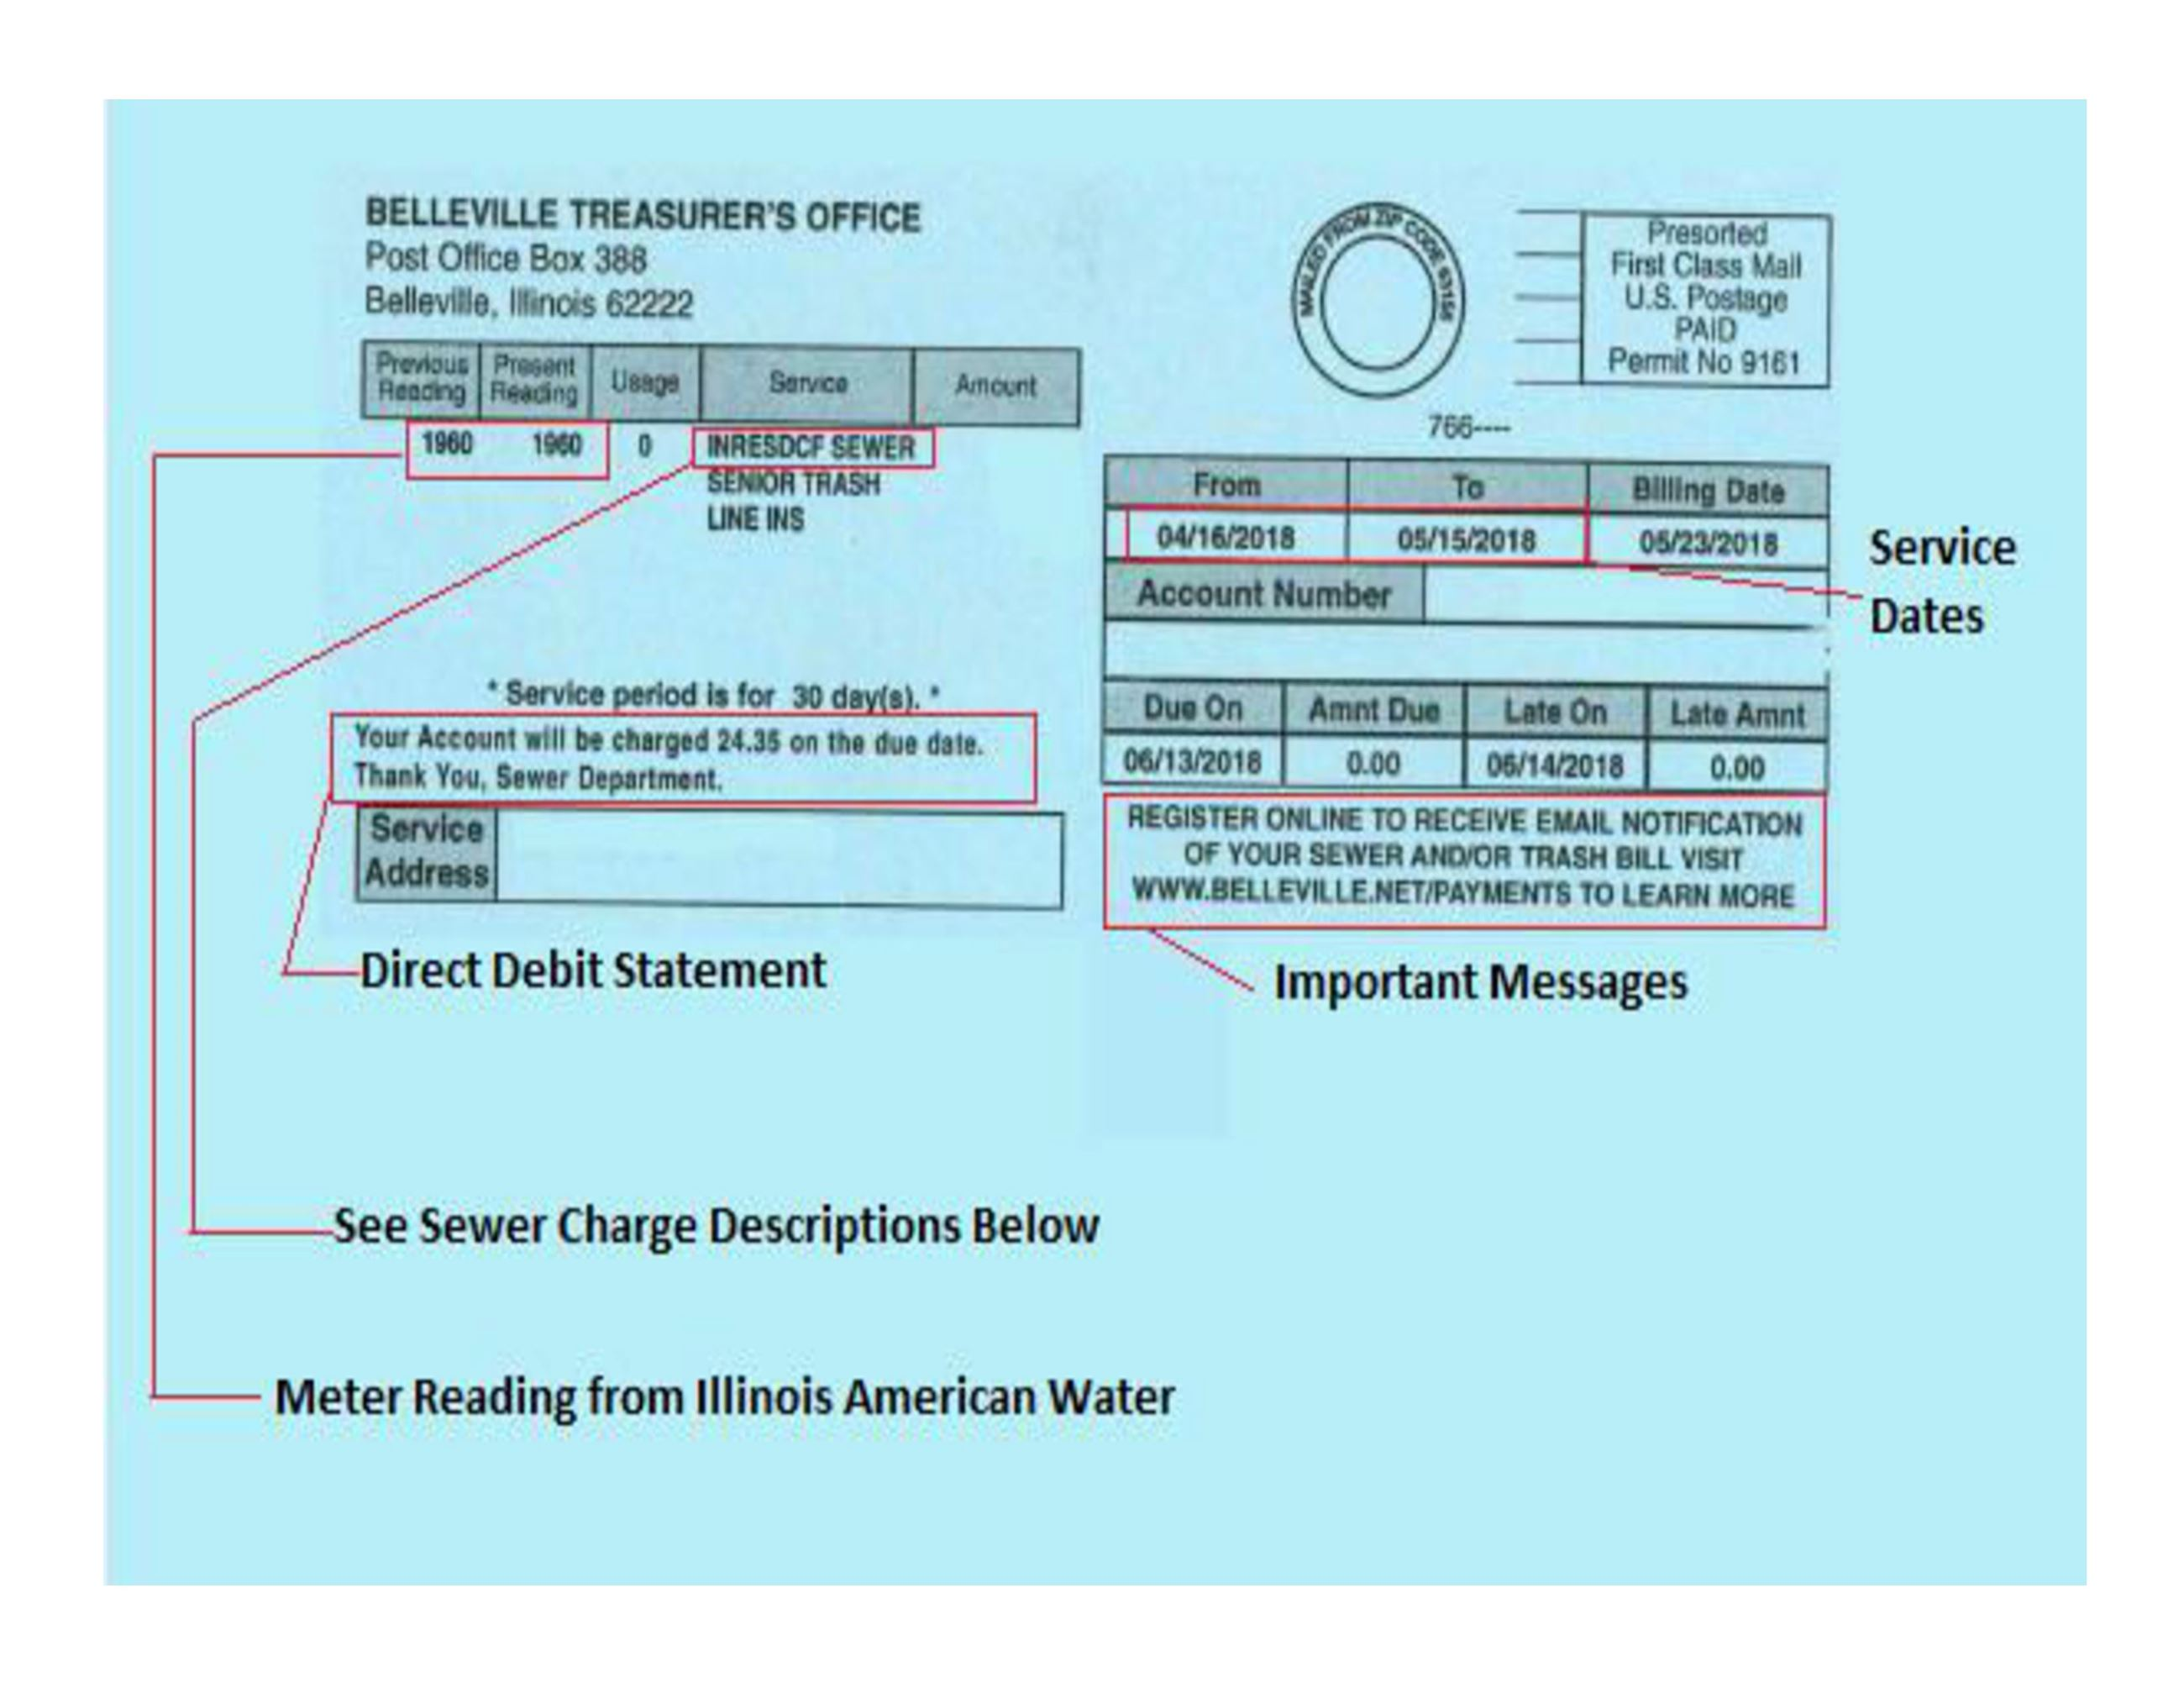 Sample Sewer Bill 8-31-18